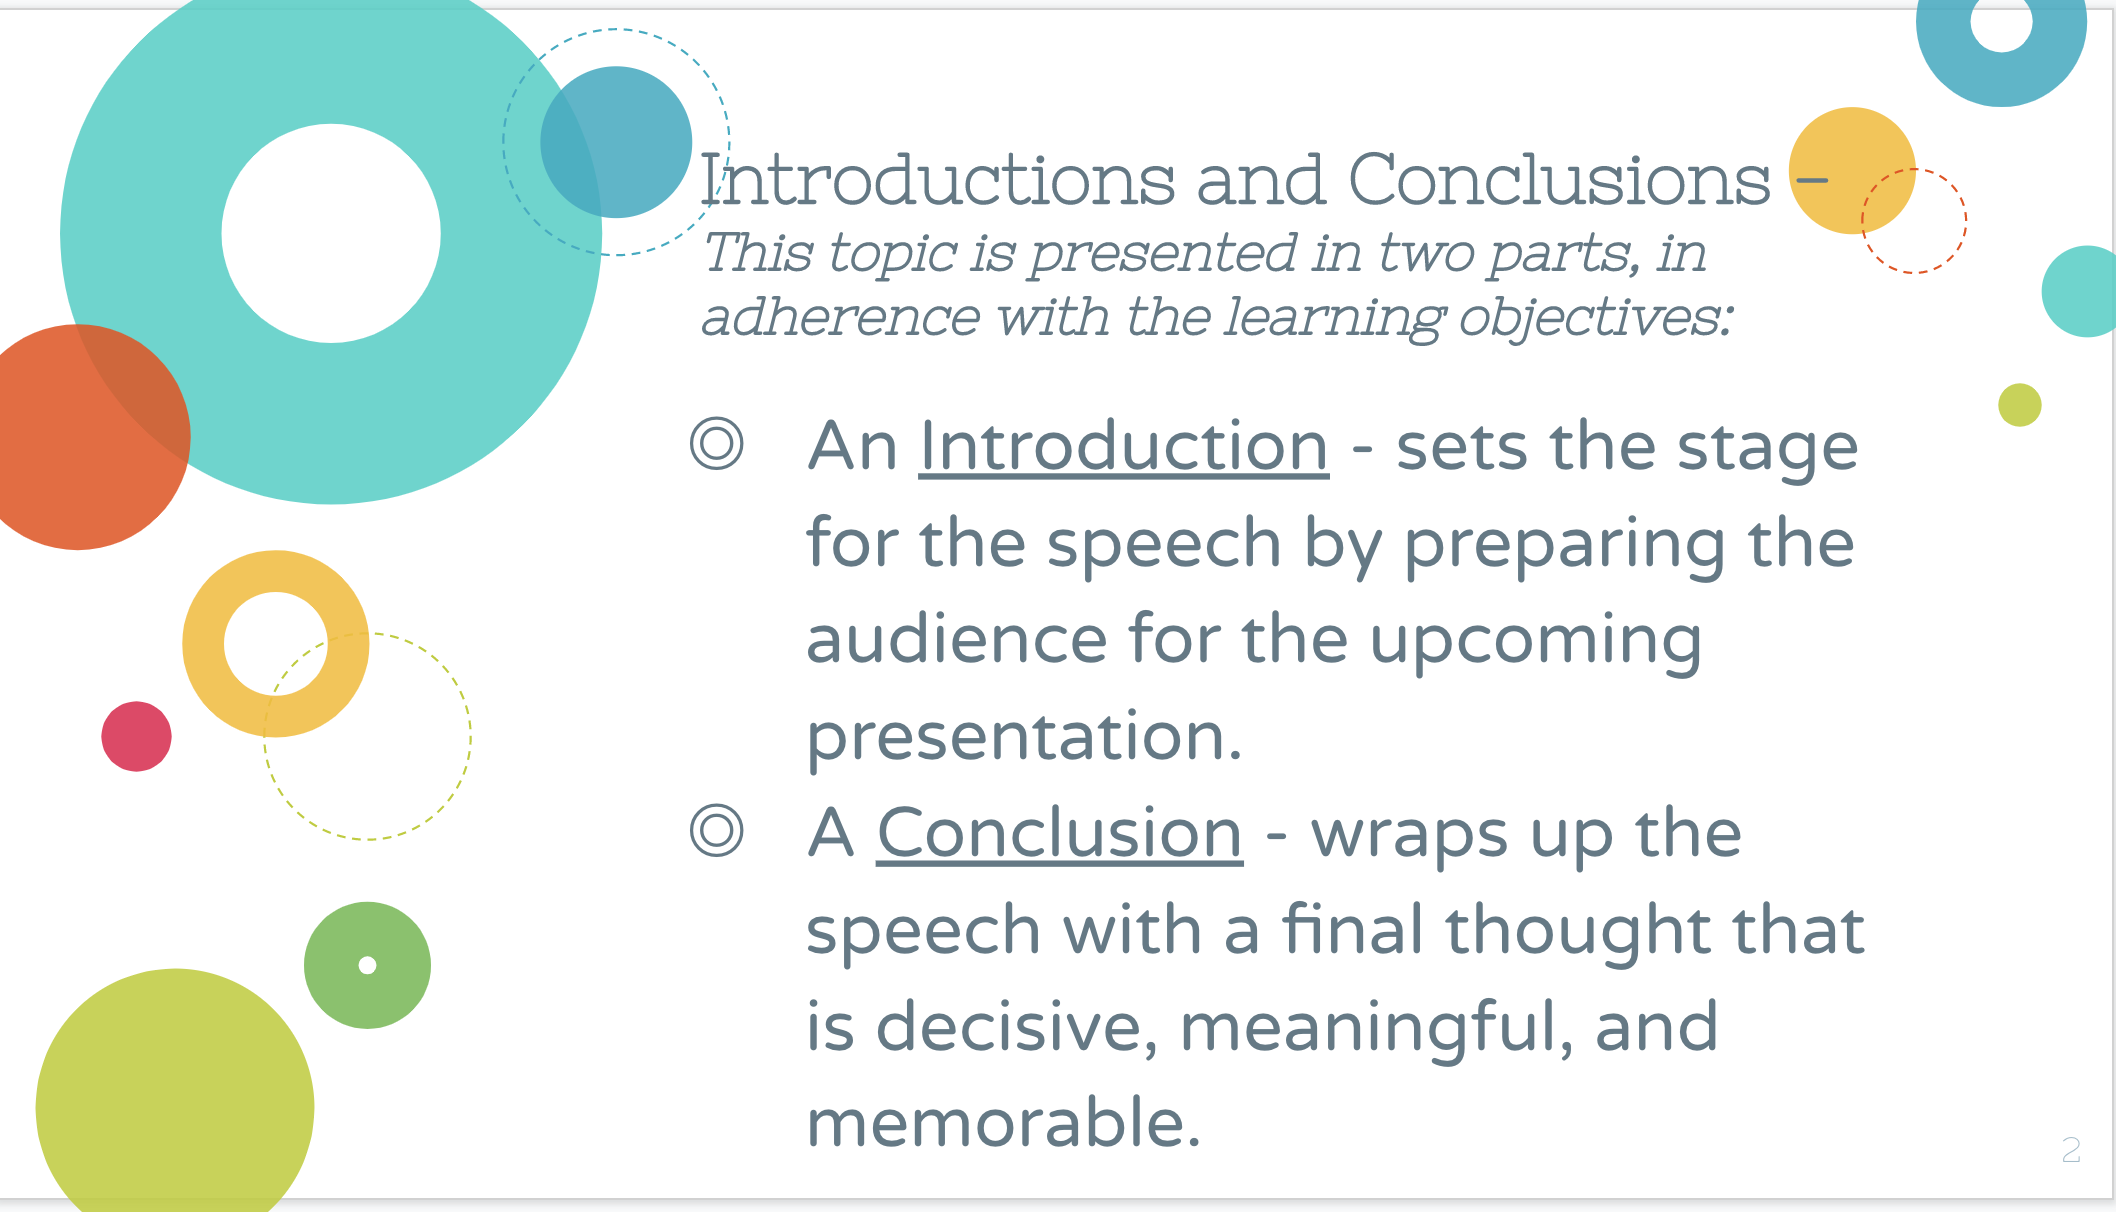 Sample Slide from Introductions and Conclusions PowerPoint